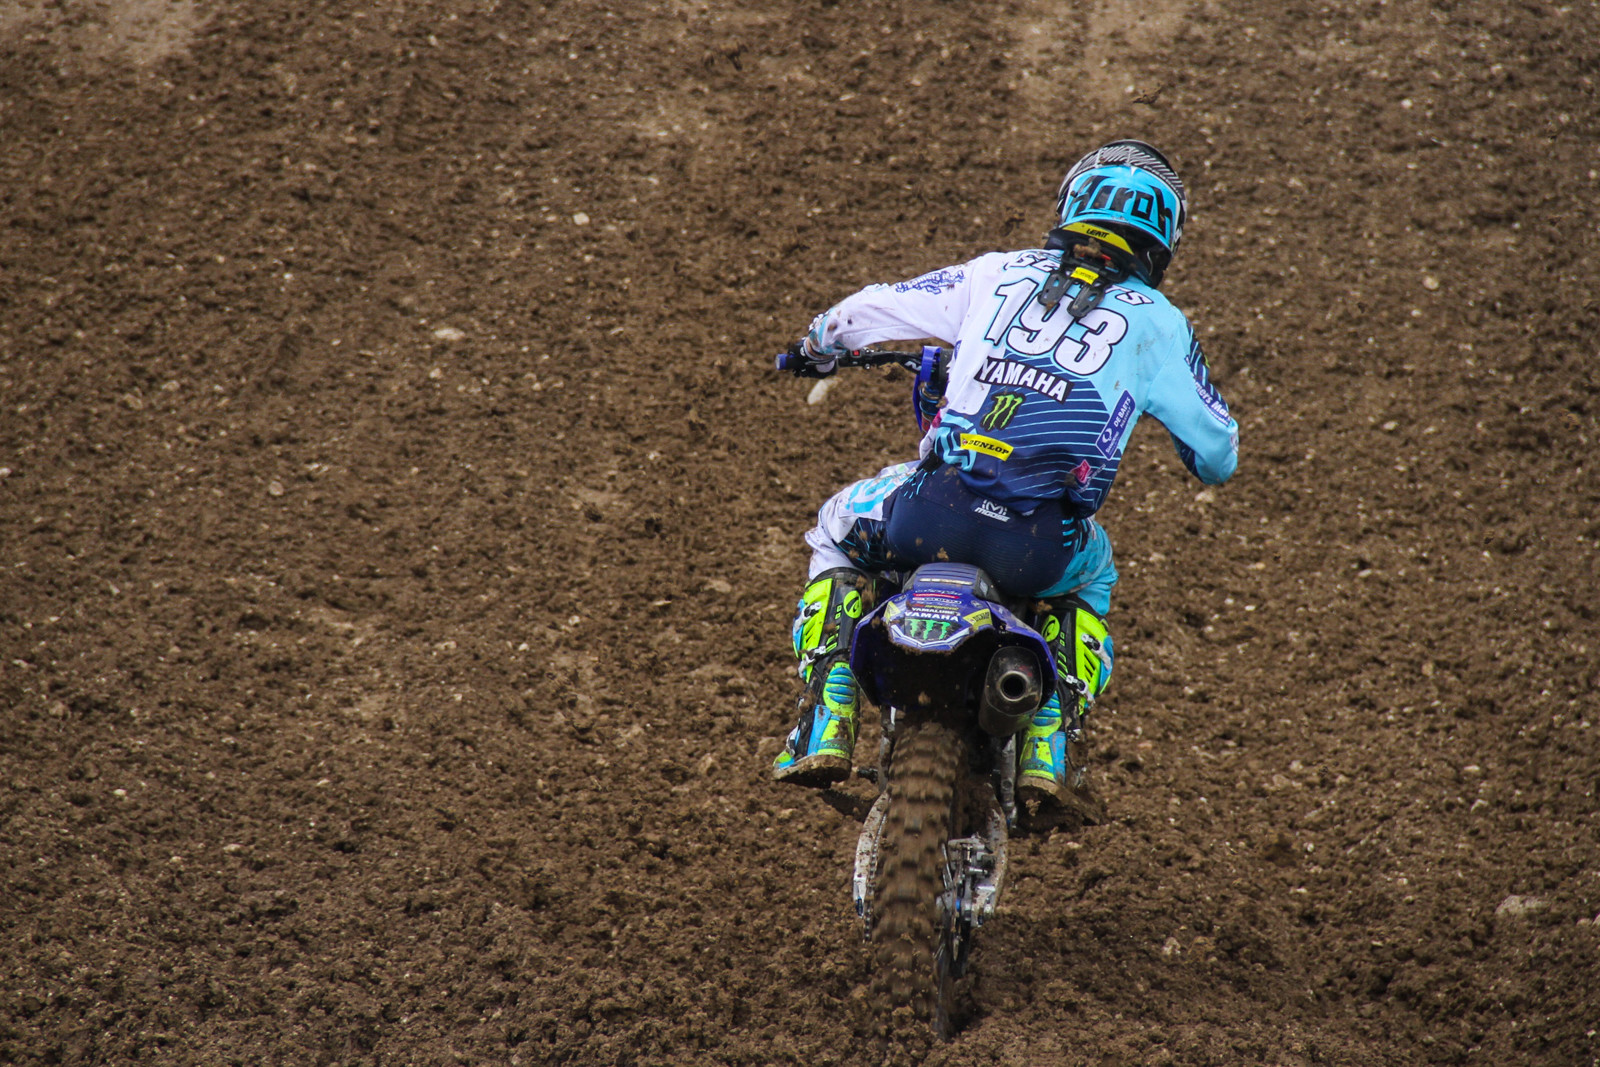 Jago Geerts just finished off the MX2 podium with a third in moto two, and fourth overall.